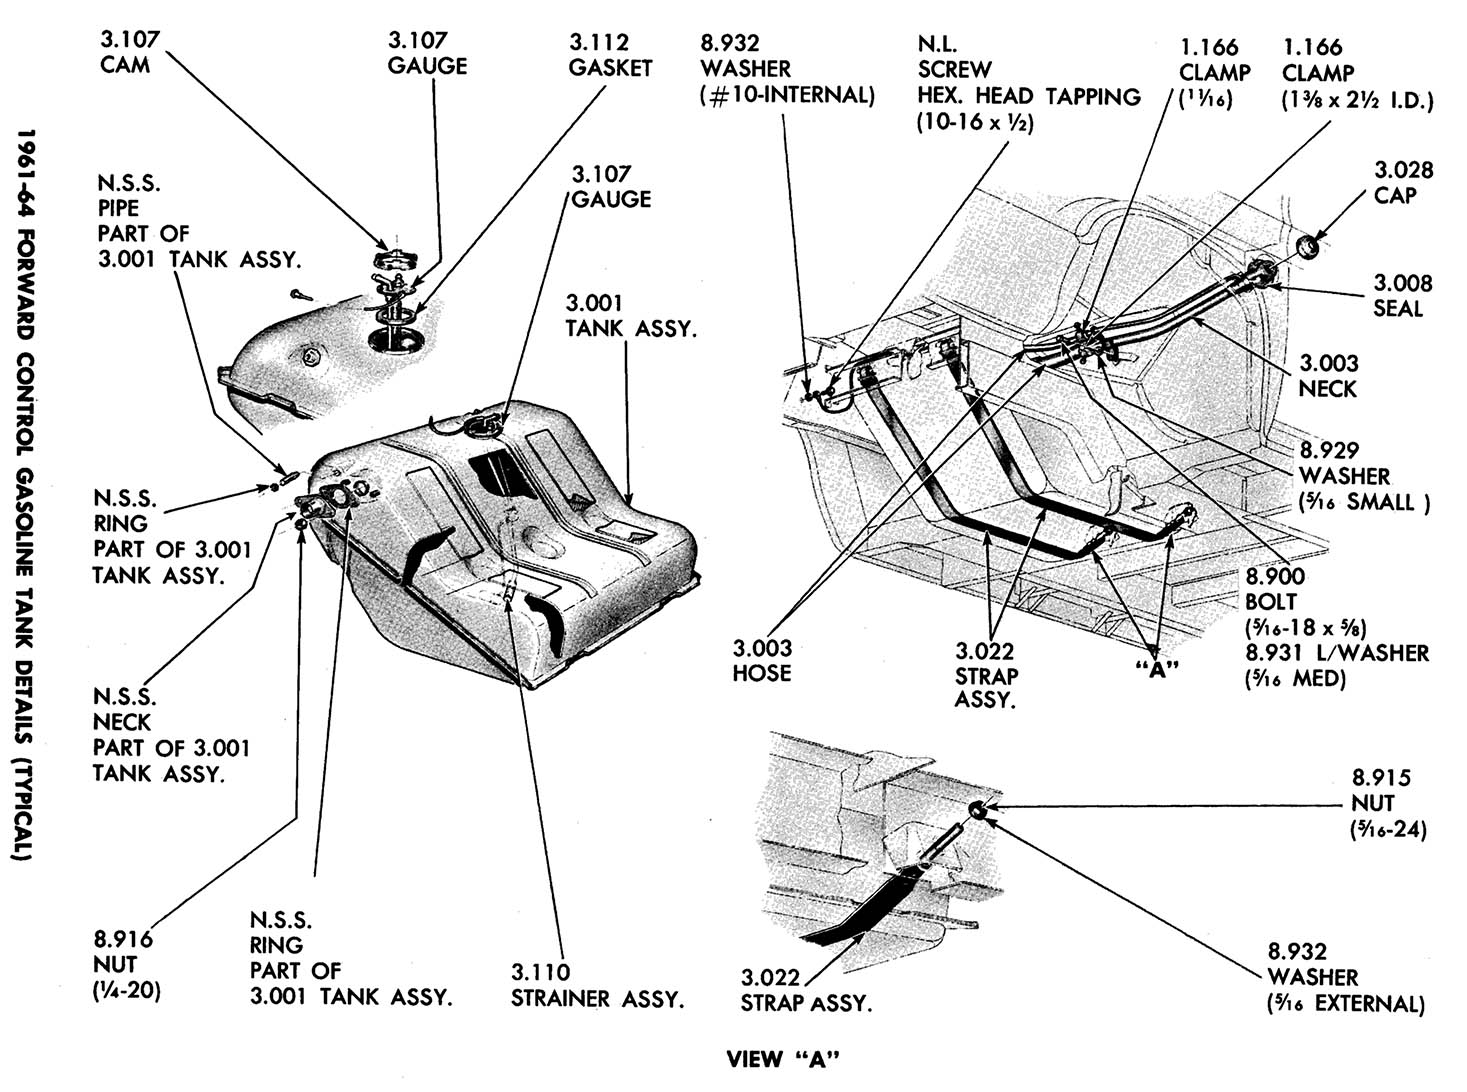 Chevrolet Corvair Engine Diagram. Chevrolet. Auto Wiring